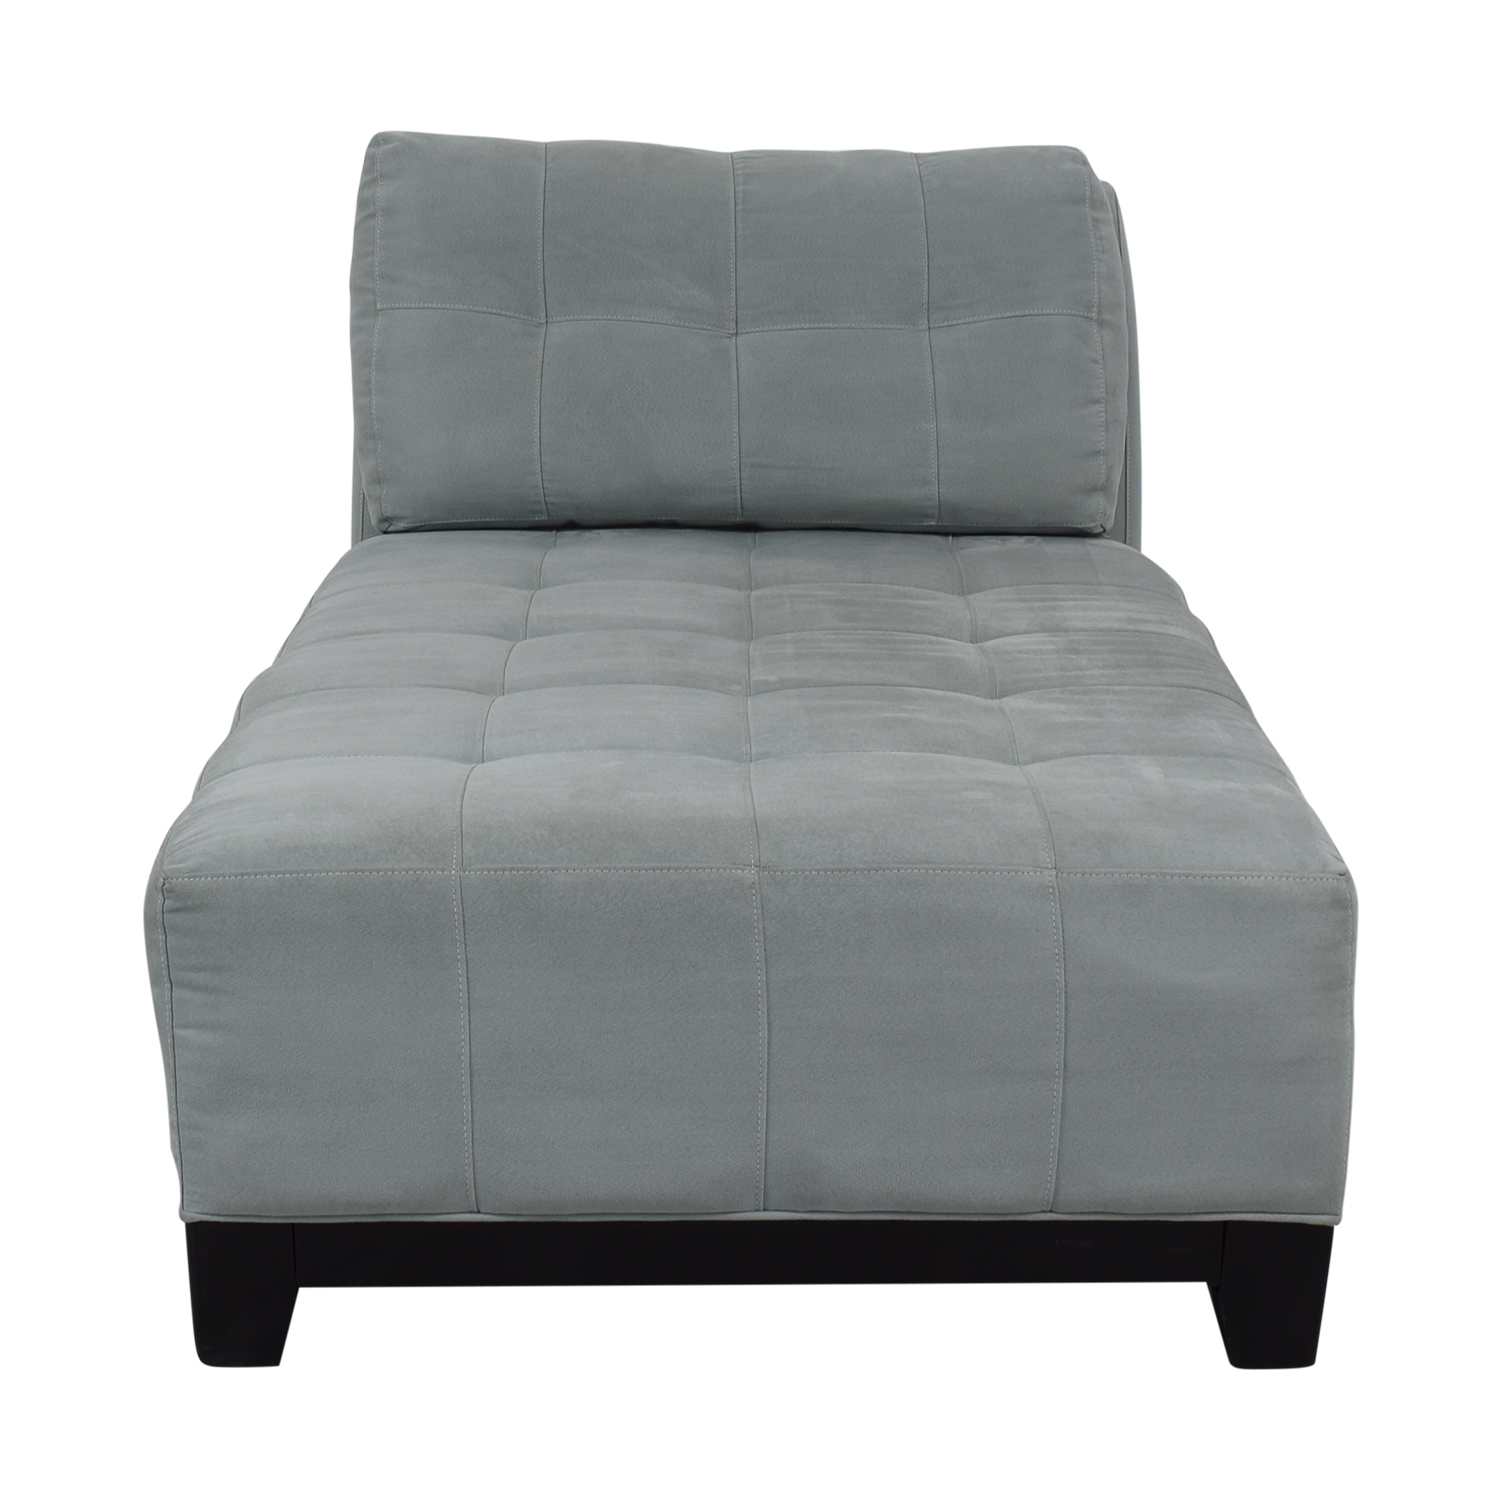 HM Richards Furniture HM Richards Furniture Chaise Lounge discount